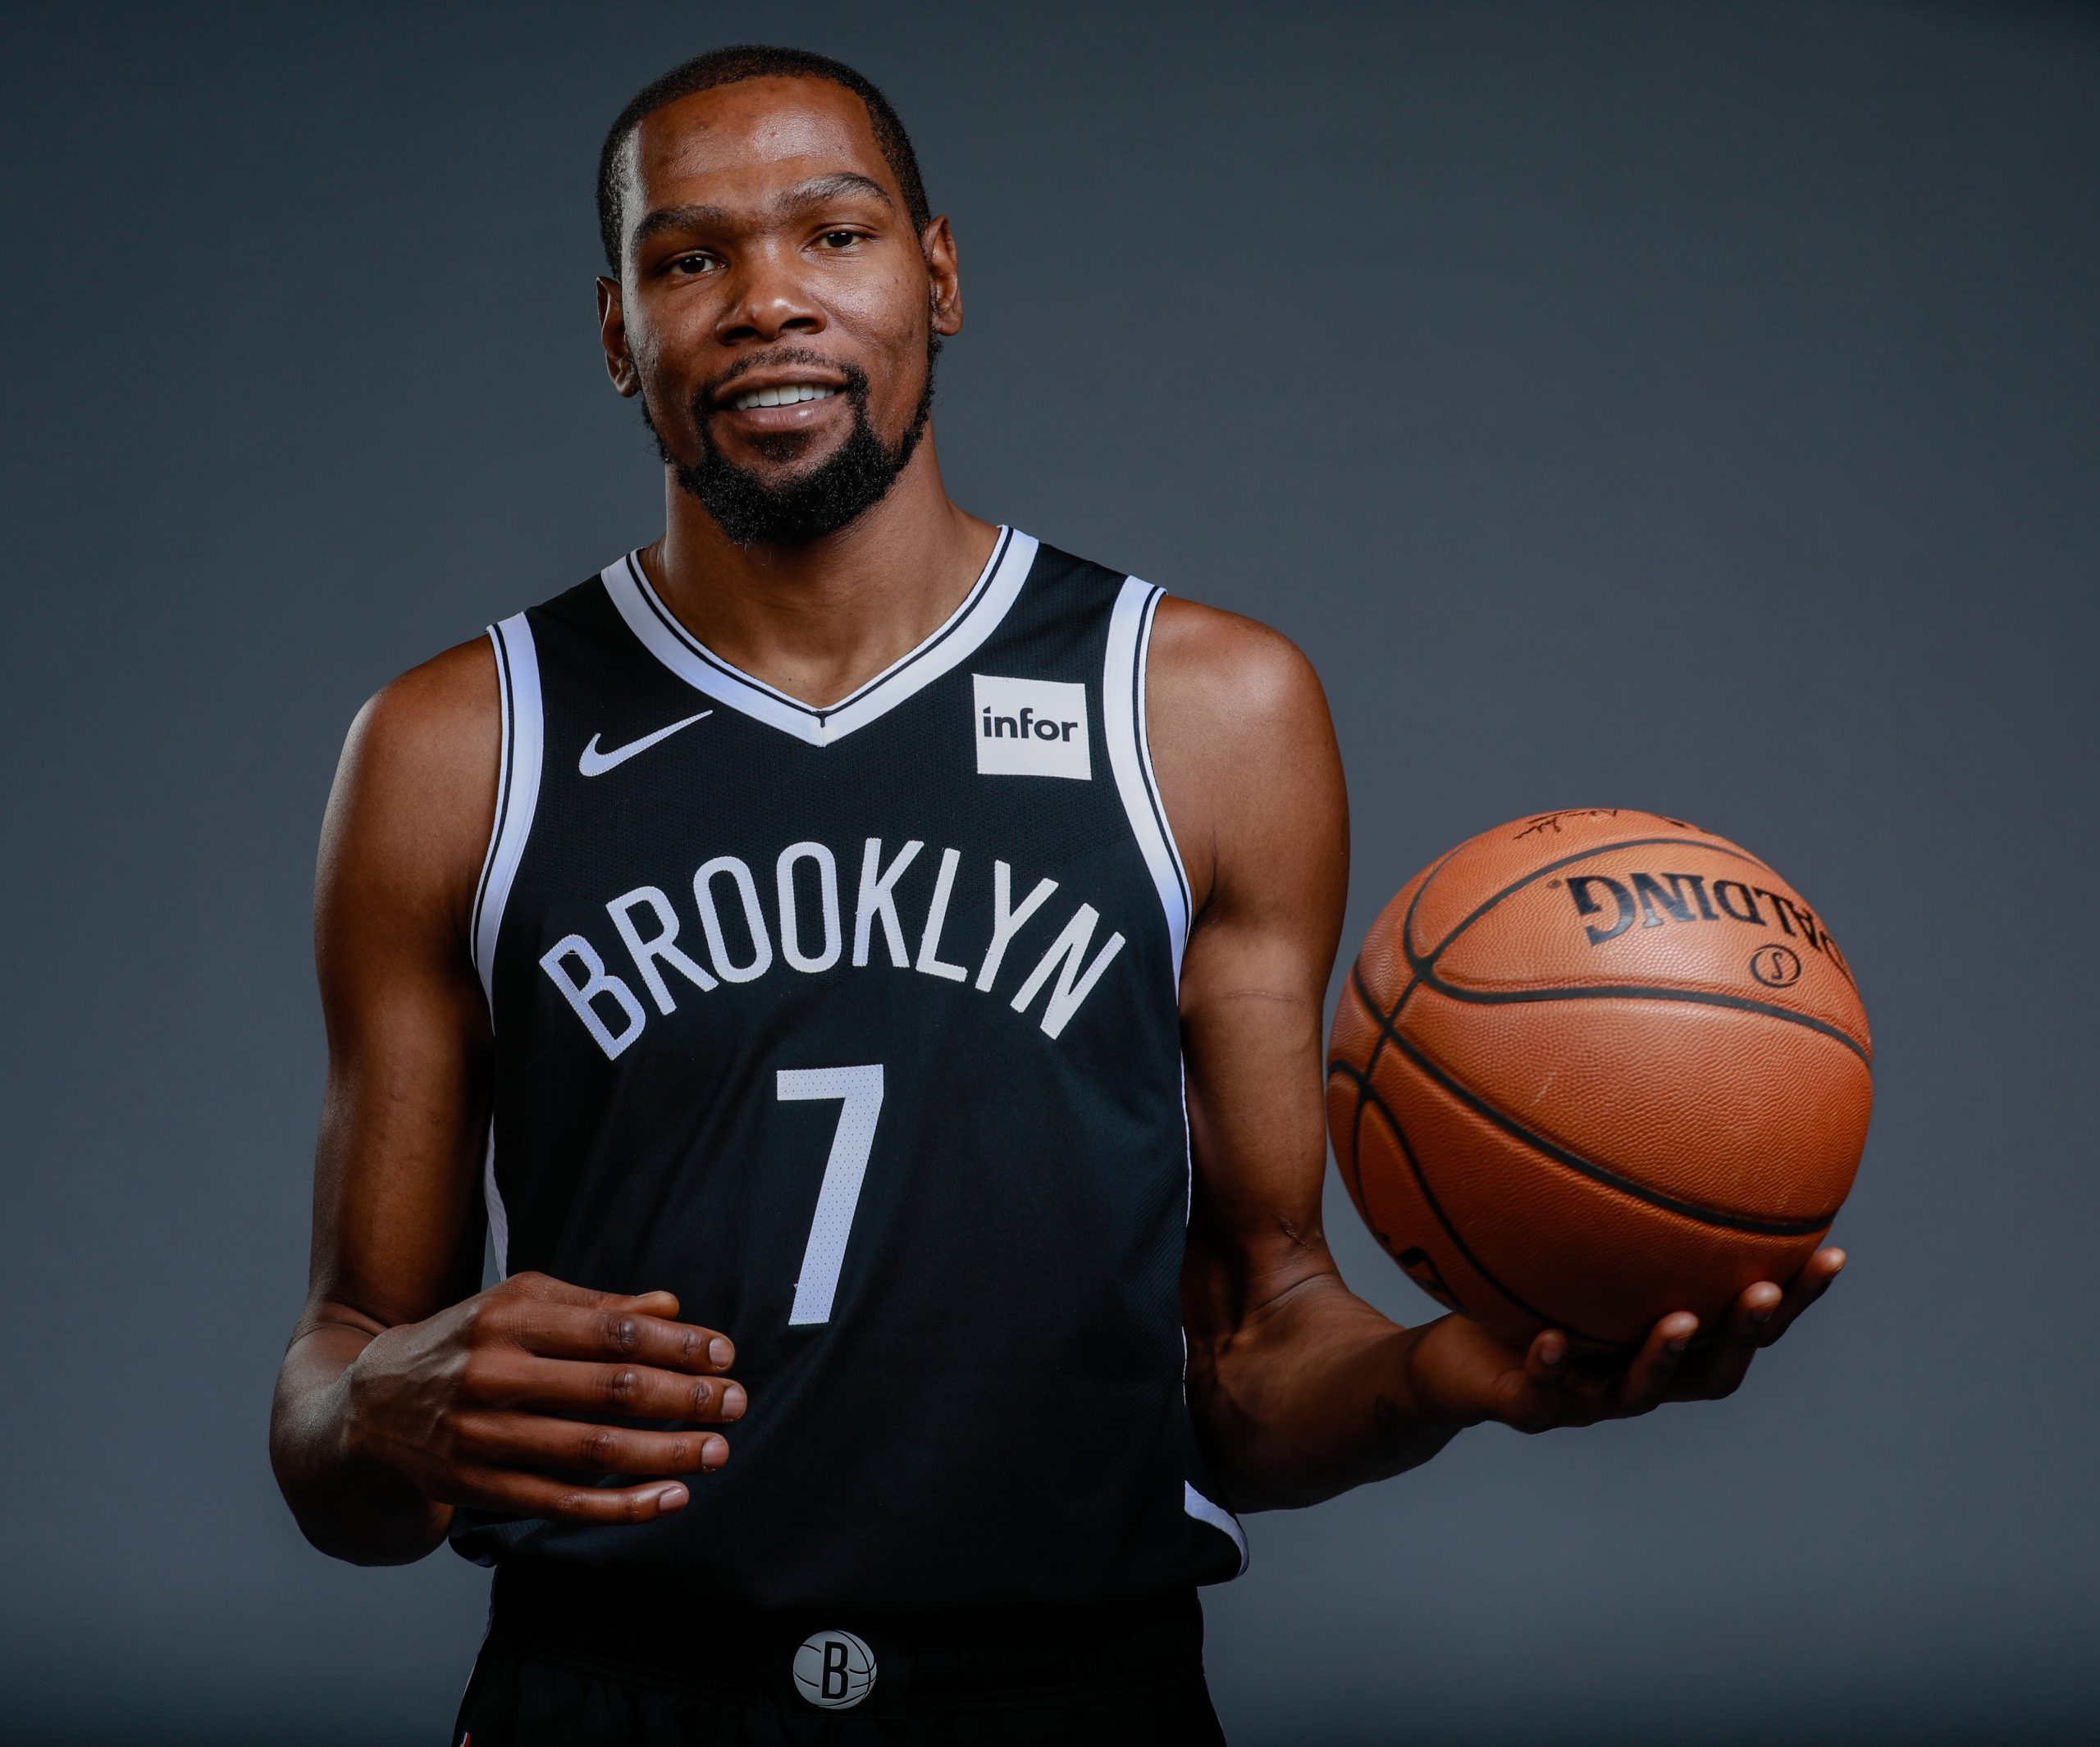 Report: Nets' Kevin Durant will not play this season after NBA restart -  amNewYork